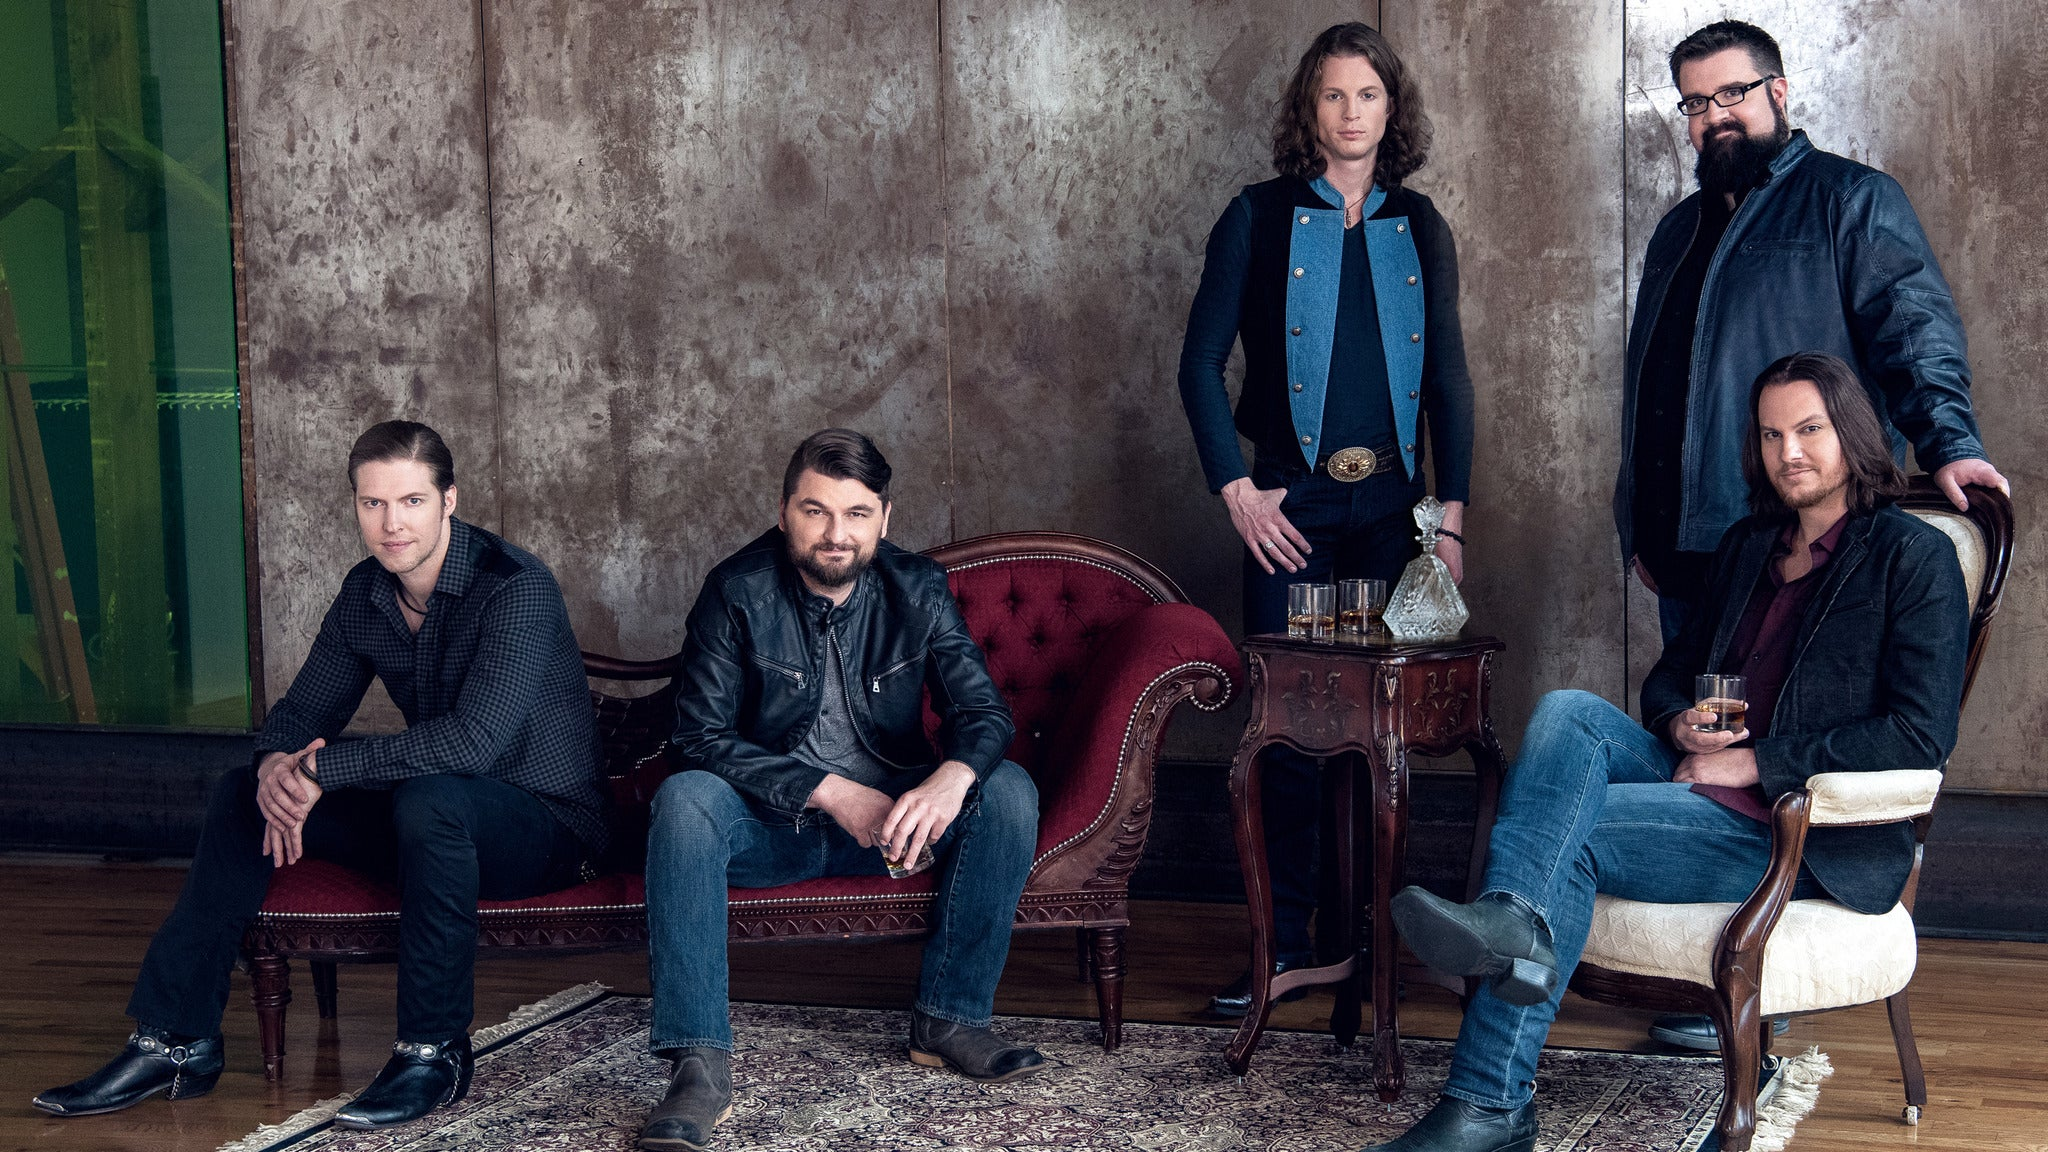 Home Free at Montgomery Performing Arts Centre